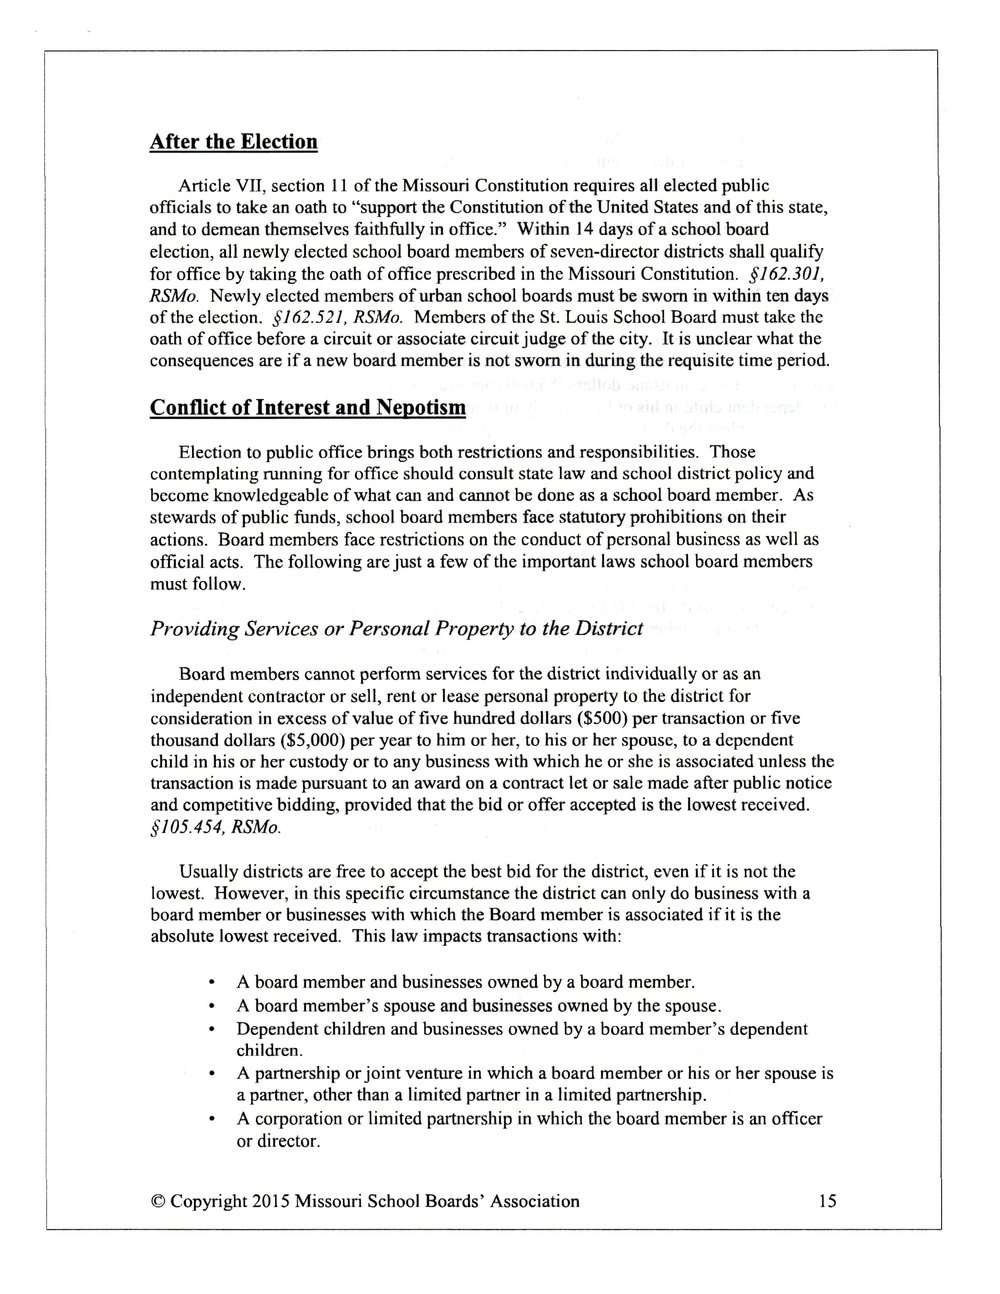 MSBA guide page 15.jpg